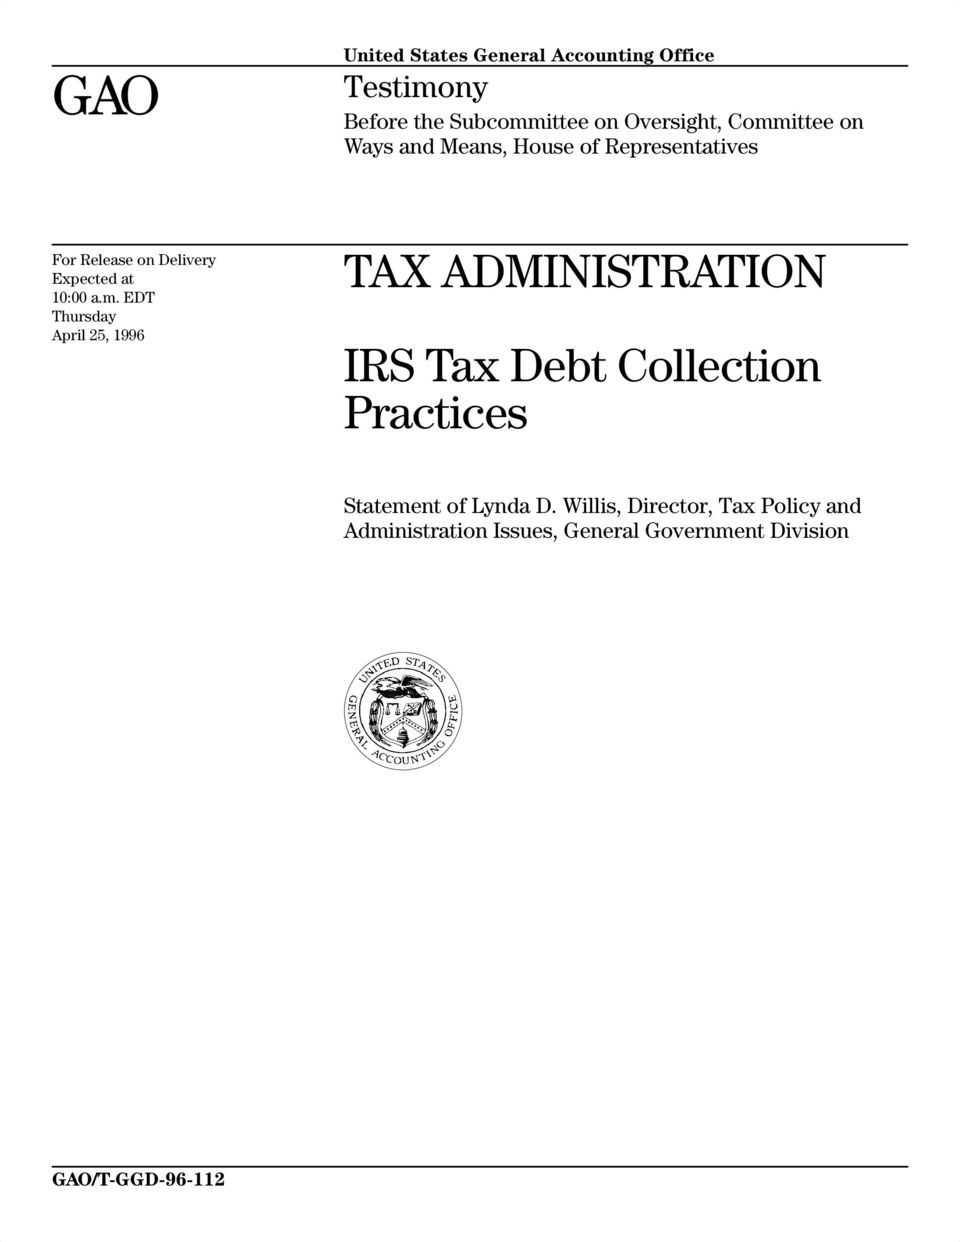 EDT Thursday April 25, 1996 TAX ADMINISTRATION IRS Tax Debt Collection Practices Statement of Lynda